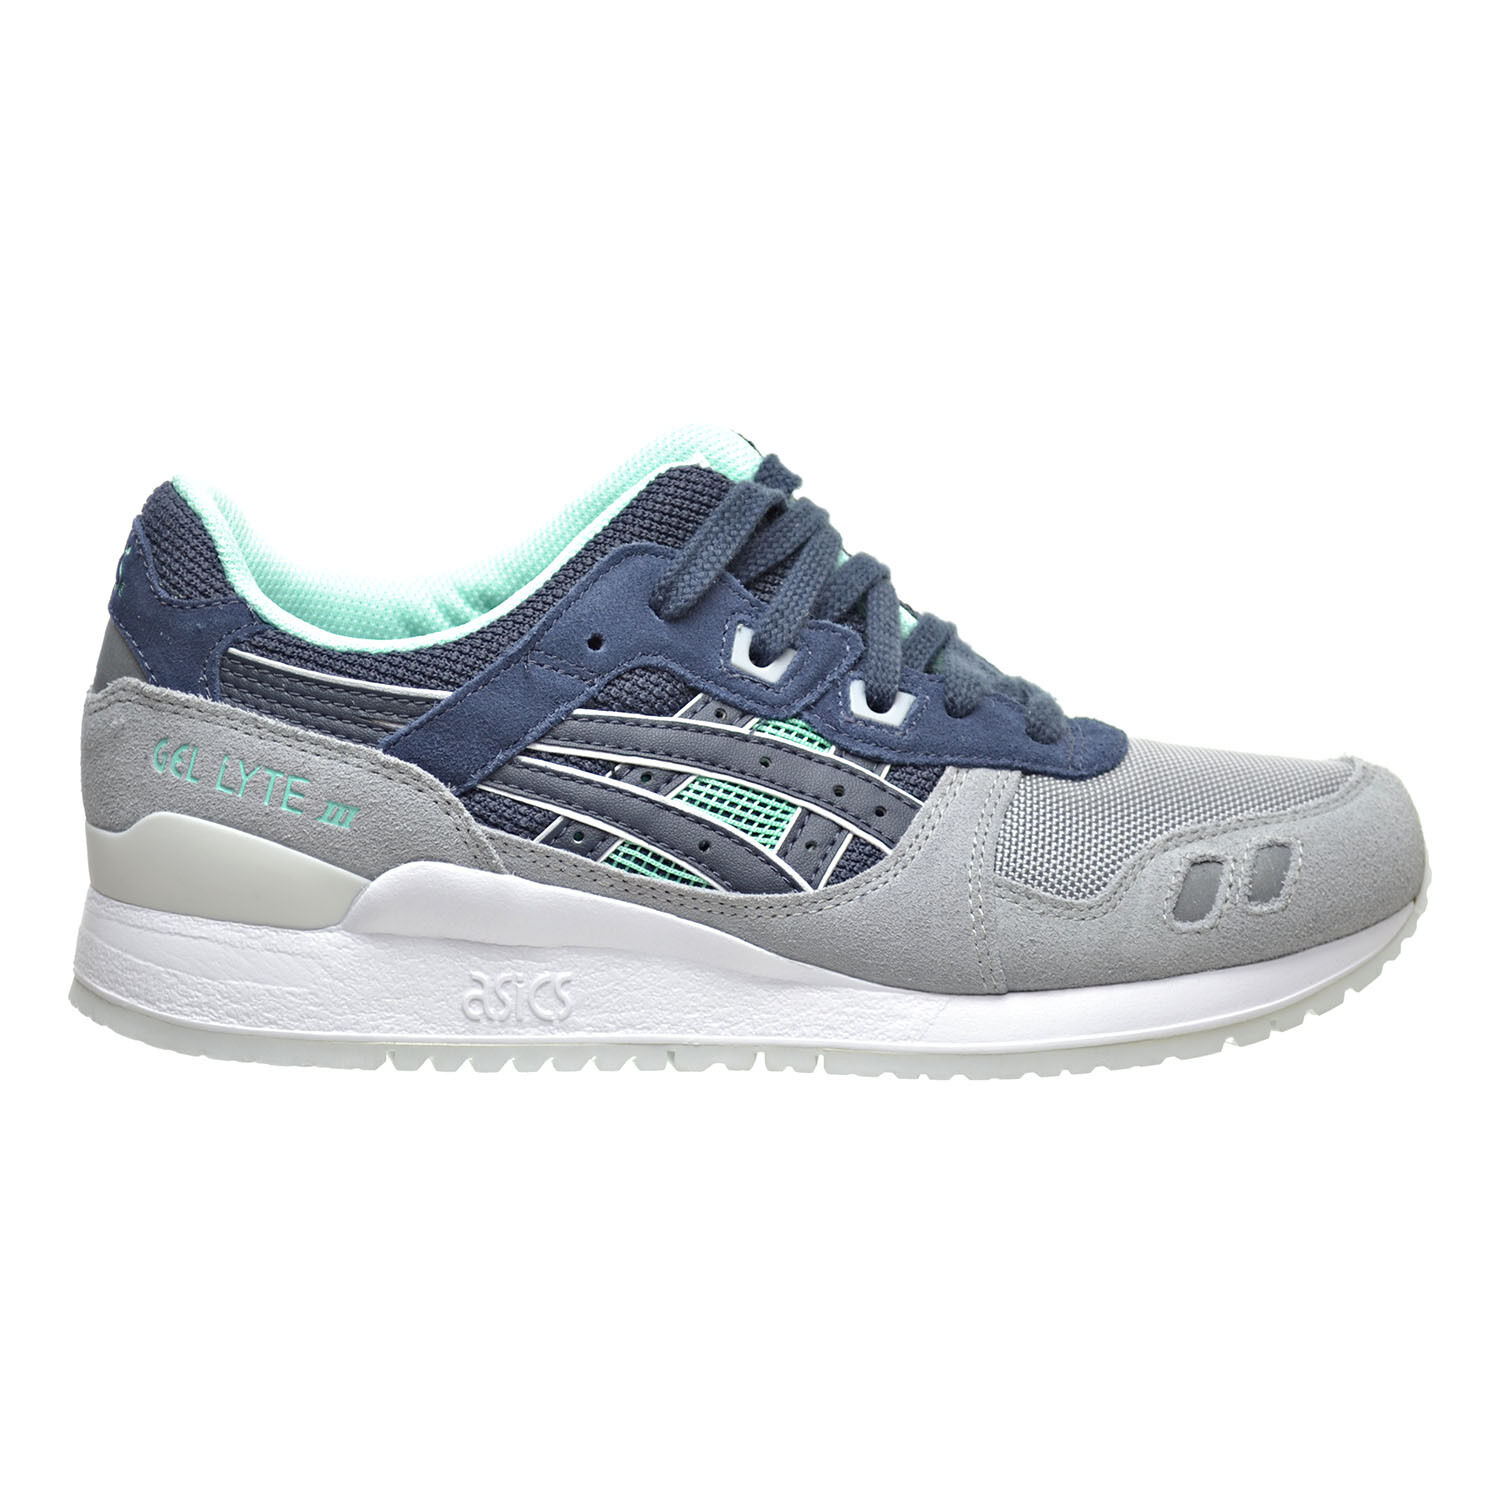 Asics Gel-Lyte III Men's Shoes India Ink/India Ink h6x2l-5050